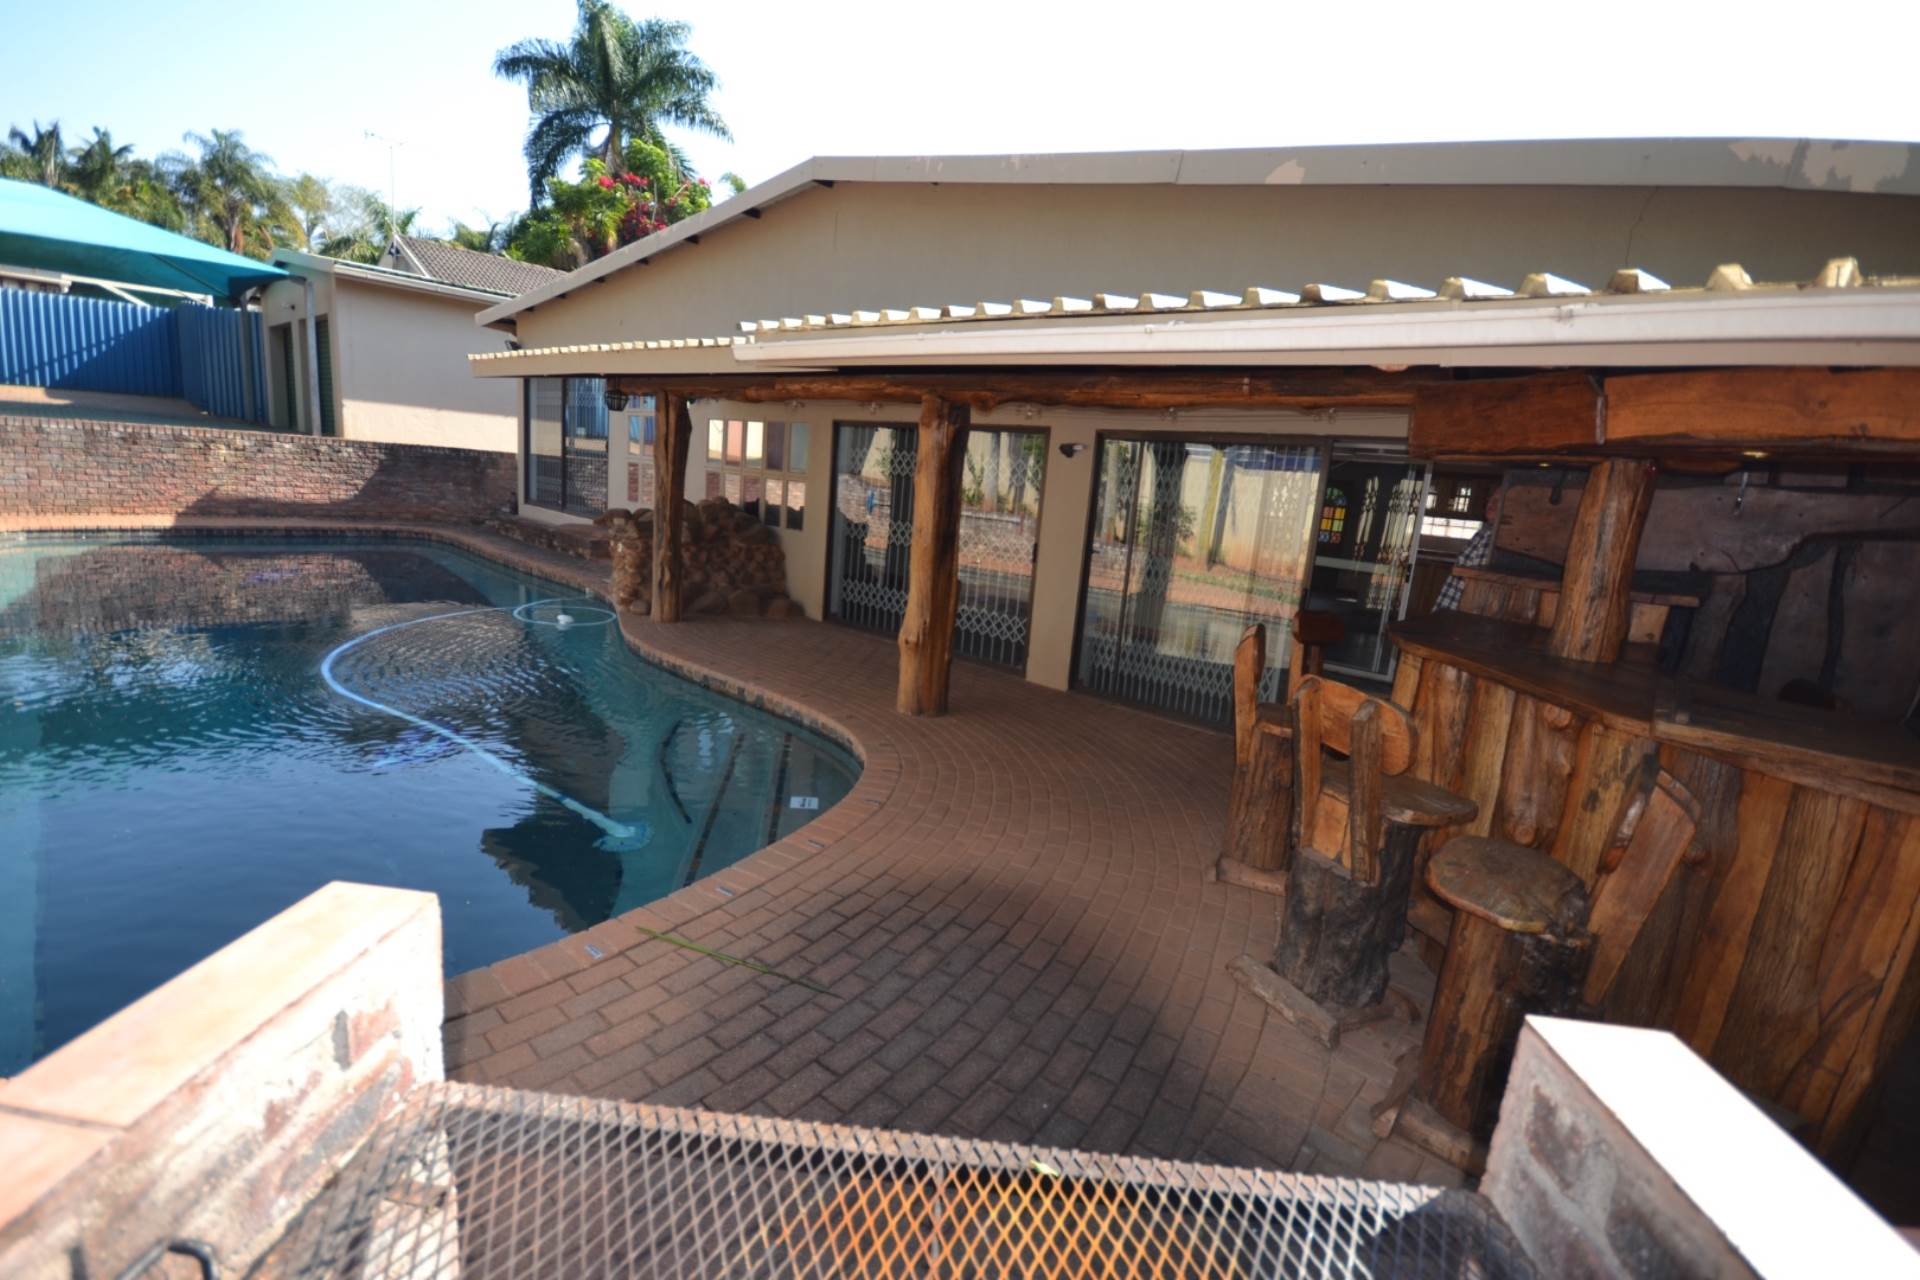 5 BedroomHouse For Sale In Parkville